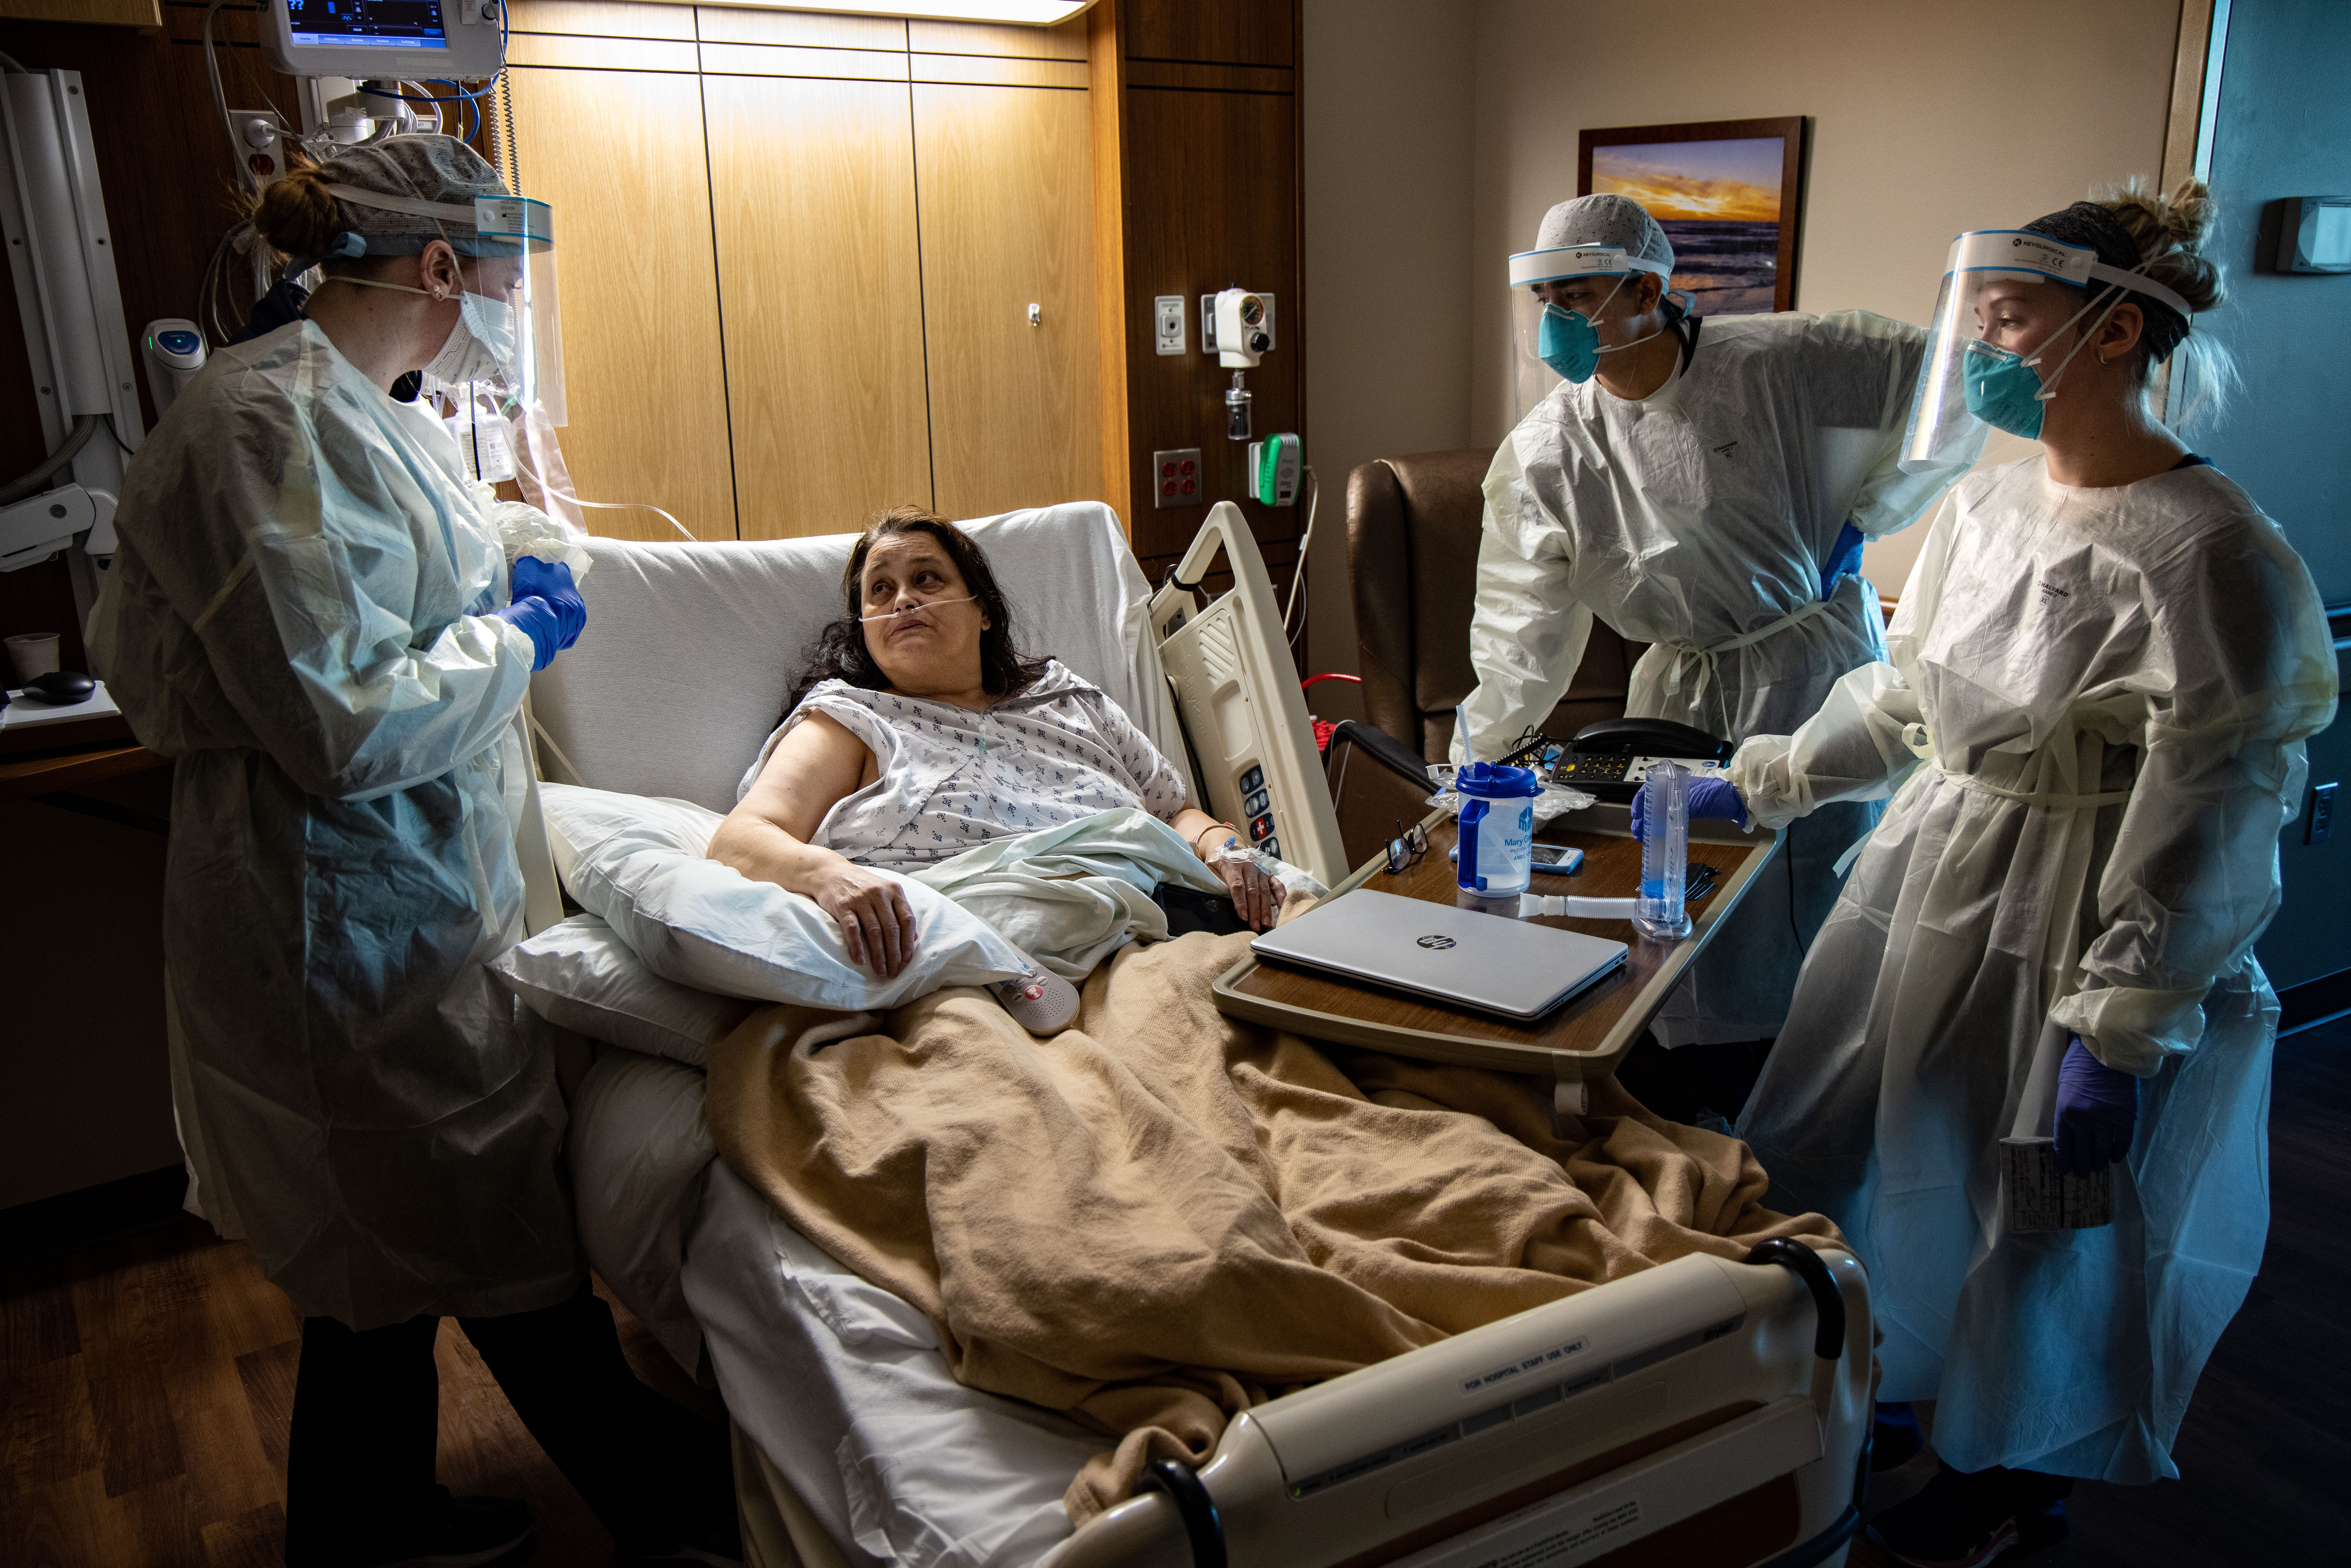 From left, nurses Connor Ramirez, Pedro Huerta and Lauren Carlson care for Mary Embrey as she recovers from COVID-19 at Mary Greeley on Dec. 9.